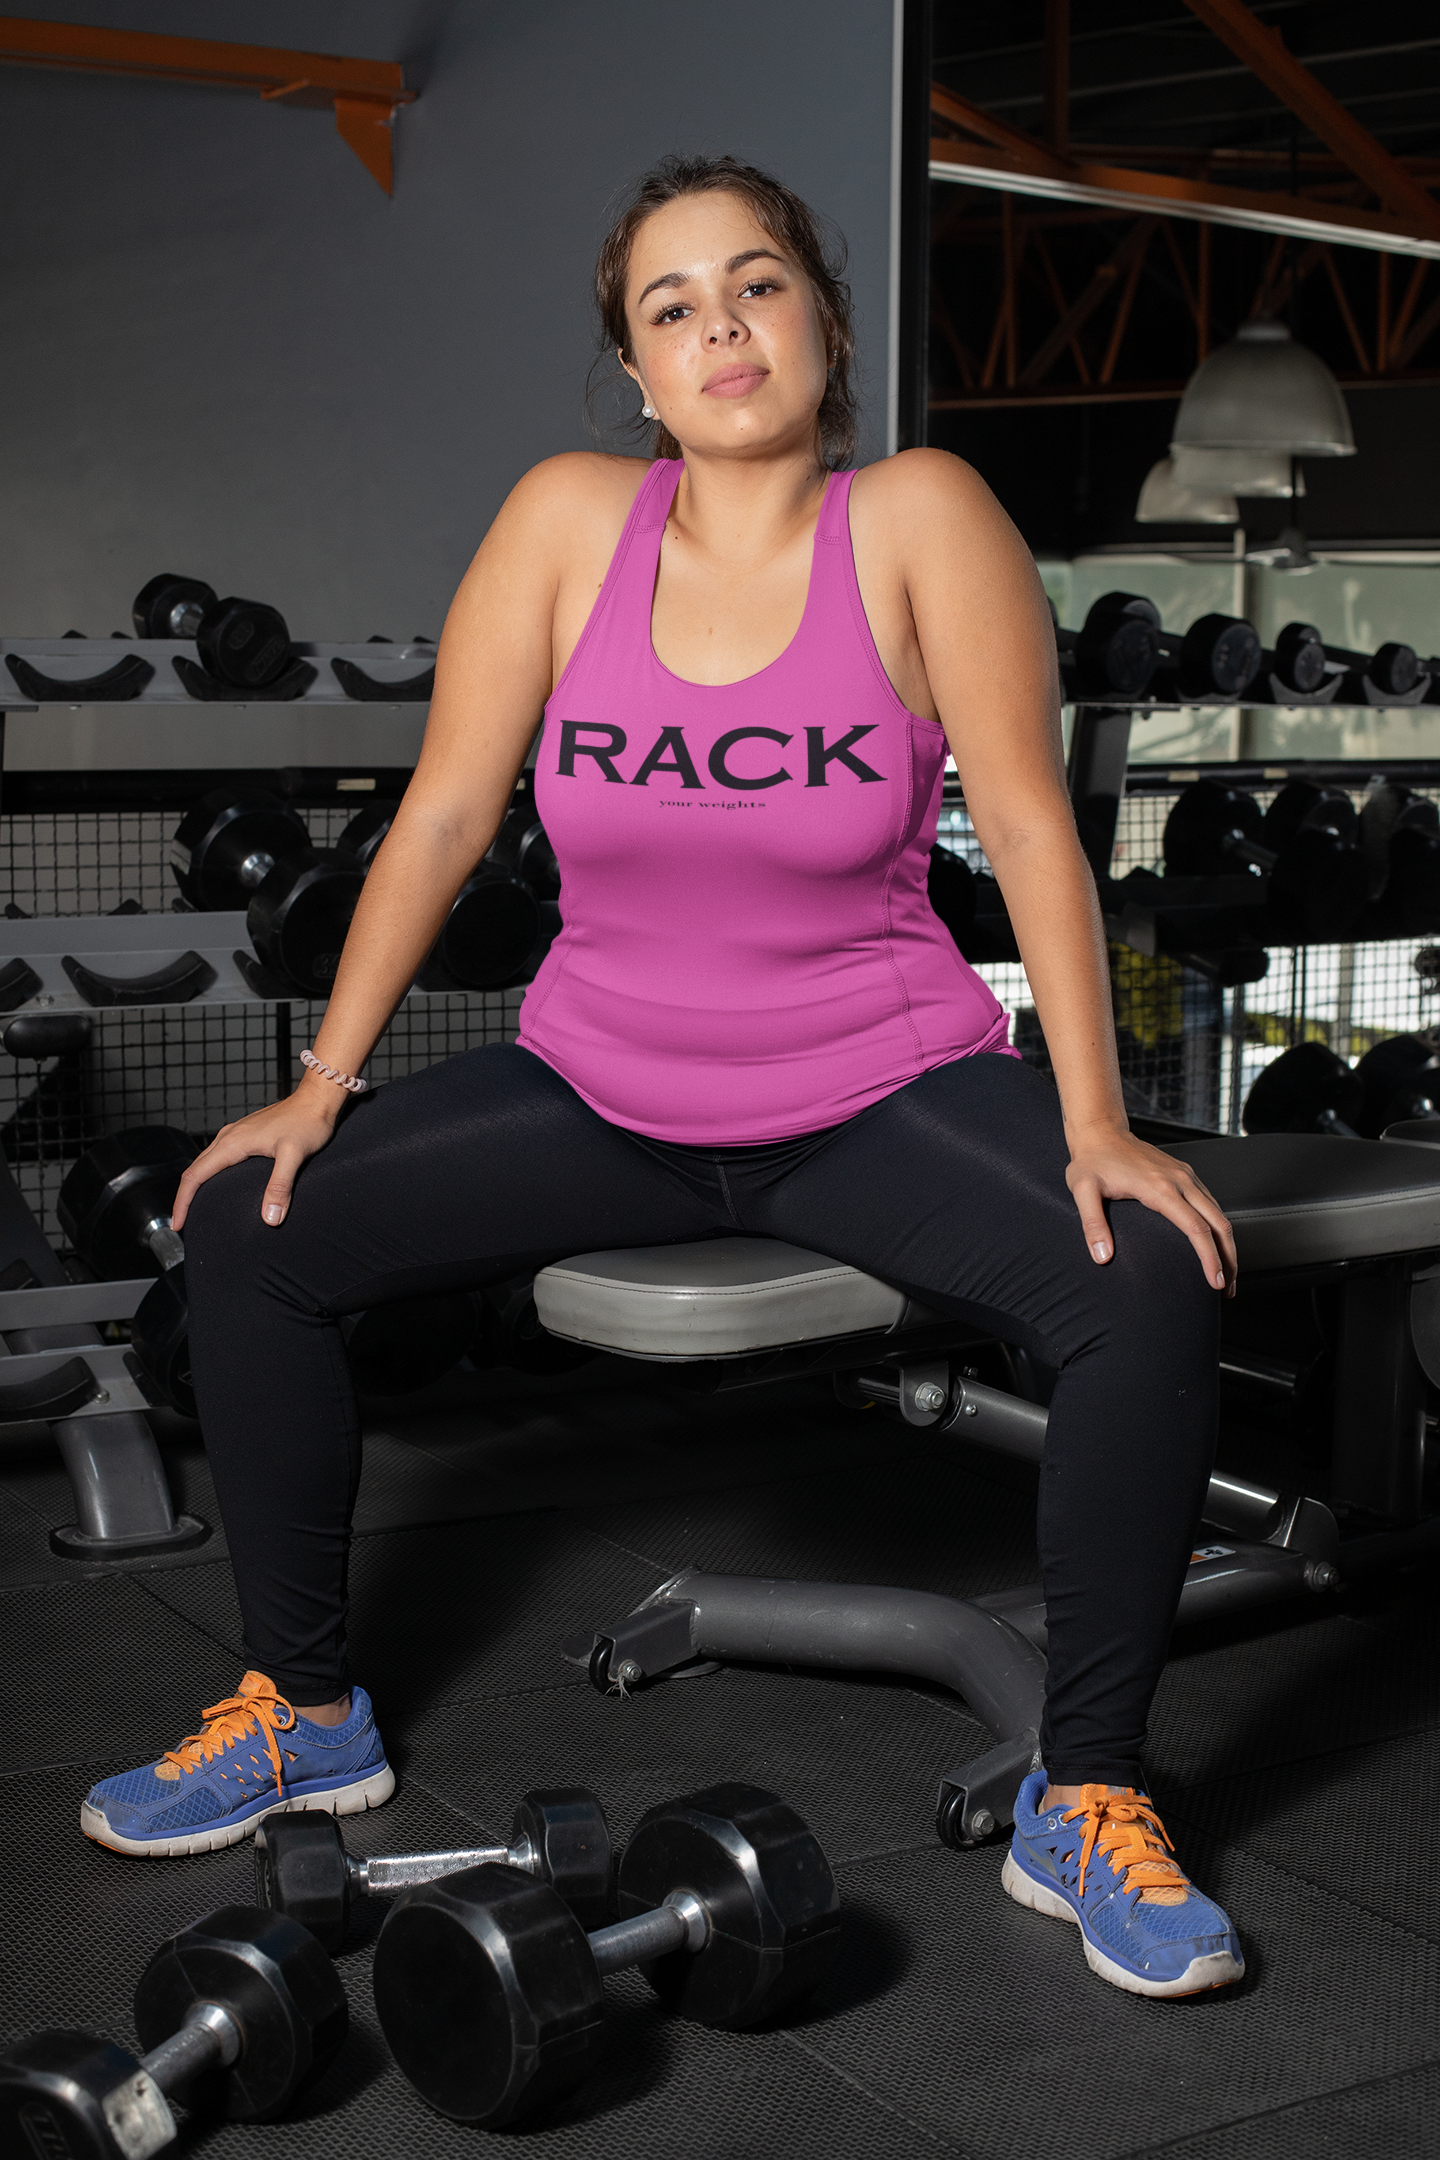 RACK (your weights) Racer Tank